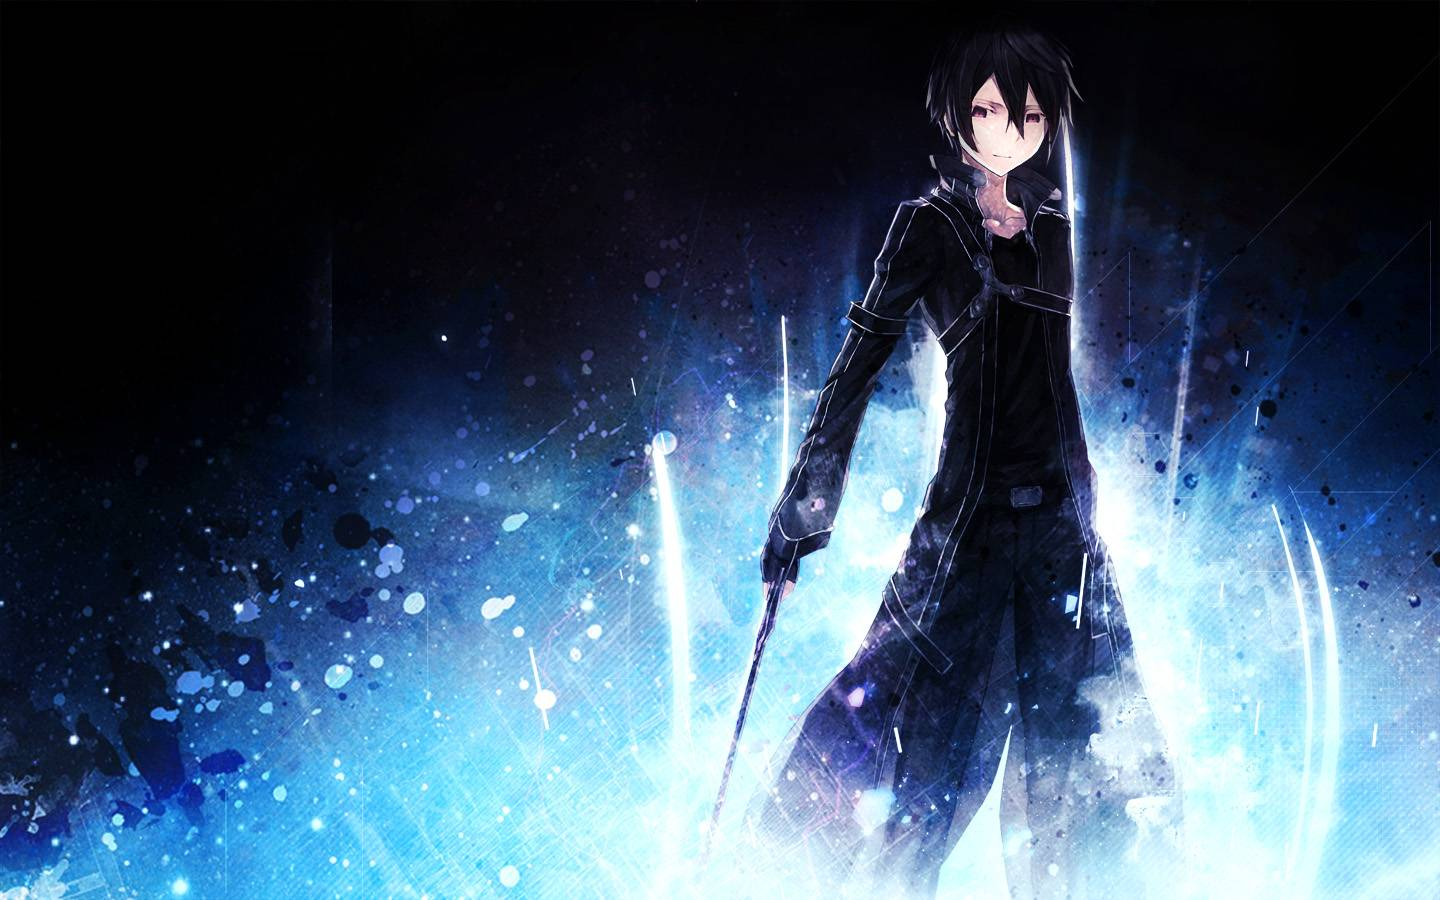 SAO Kirito kun wallpaper   Sword Art Online Wallpaper 1440x900